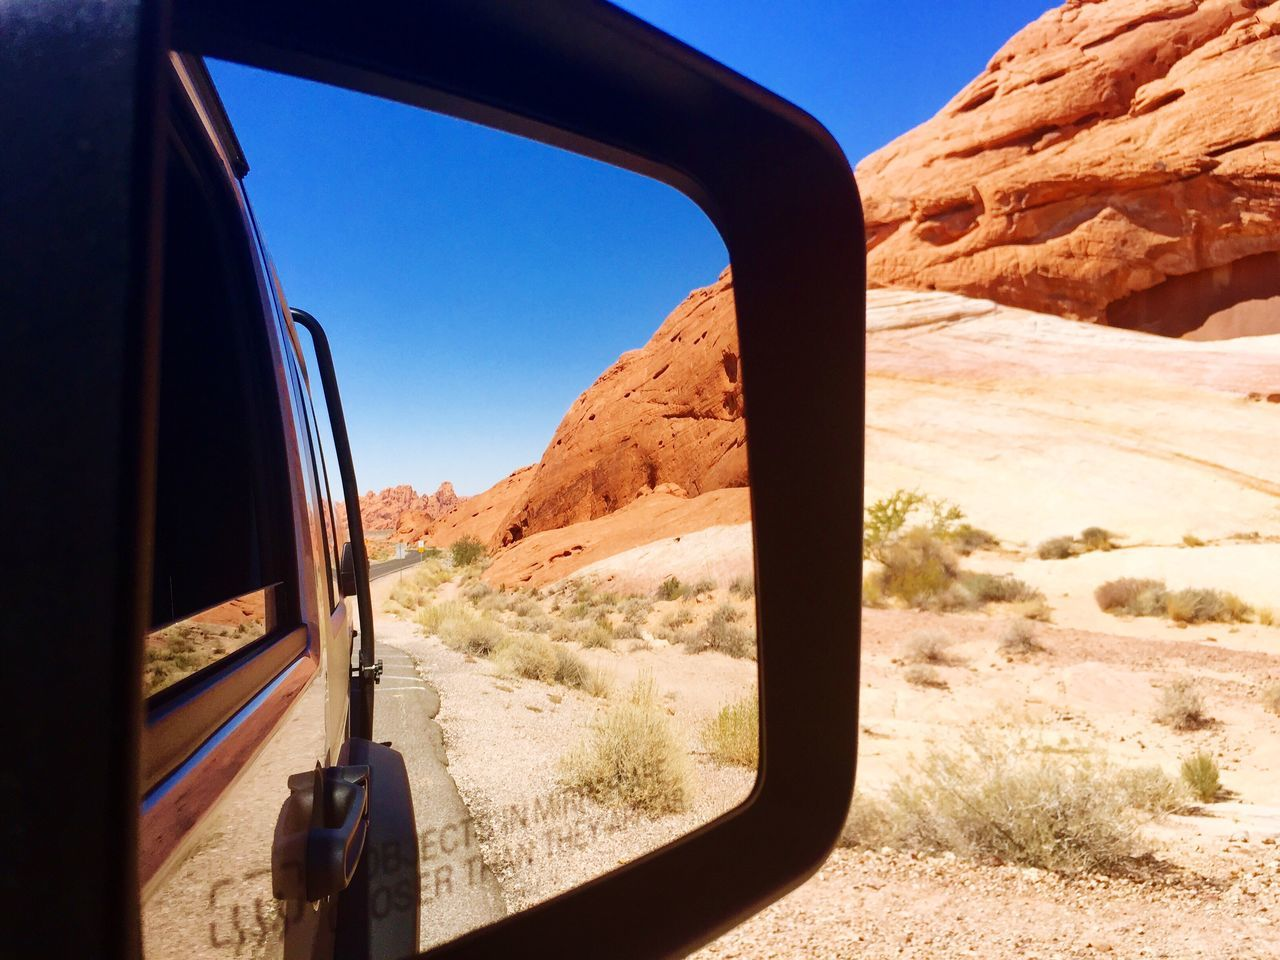 Reflection Transportation Mountain Nature Car Mode Of Transport Scenics Land Vehicle Beauty In Nature Mountain Range Rock - Object Day Non-urban Scene Clear Sky Side-view Mirror No People Travel Destinations Outdoors Tranquility Landscape Tranquil Scene NEVADA, USA!♡ Roadtrip Phone Photography The Great Outdoors - 2017 EyeEm Awards